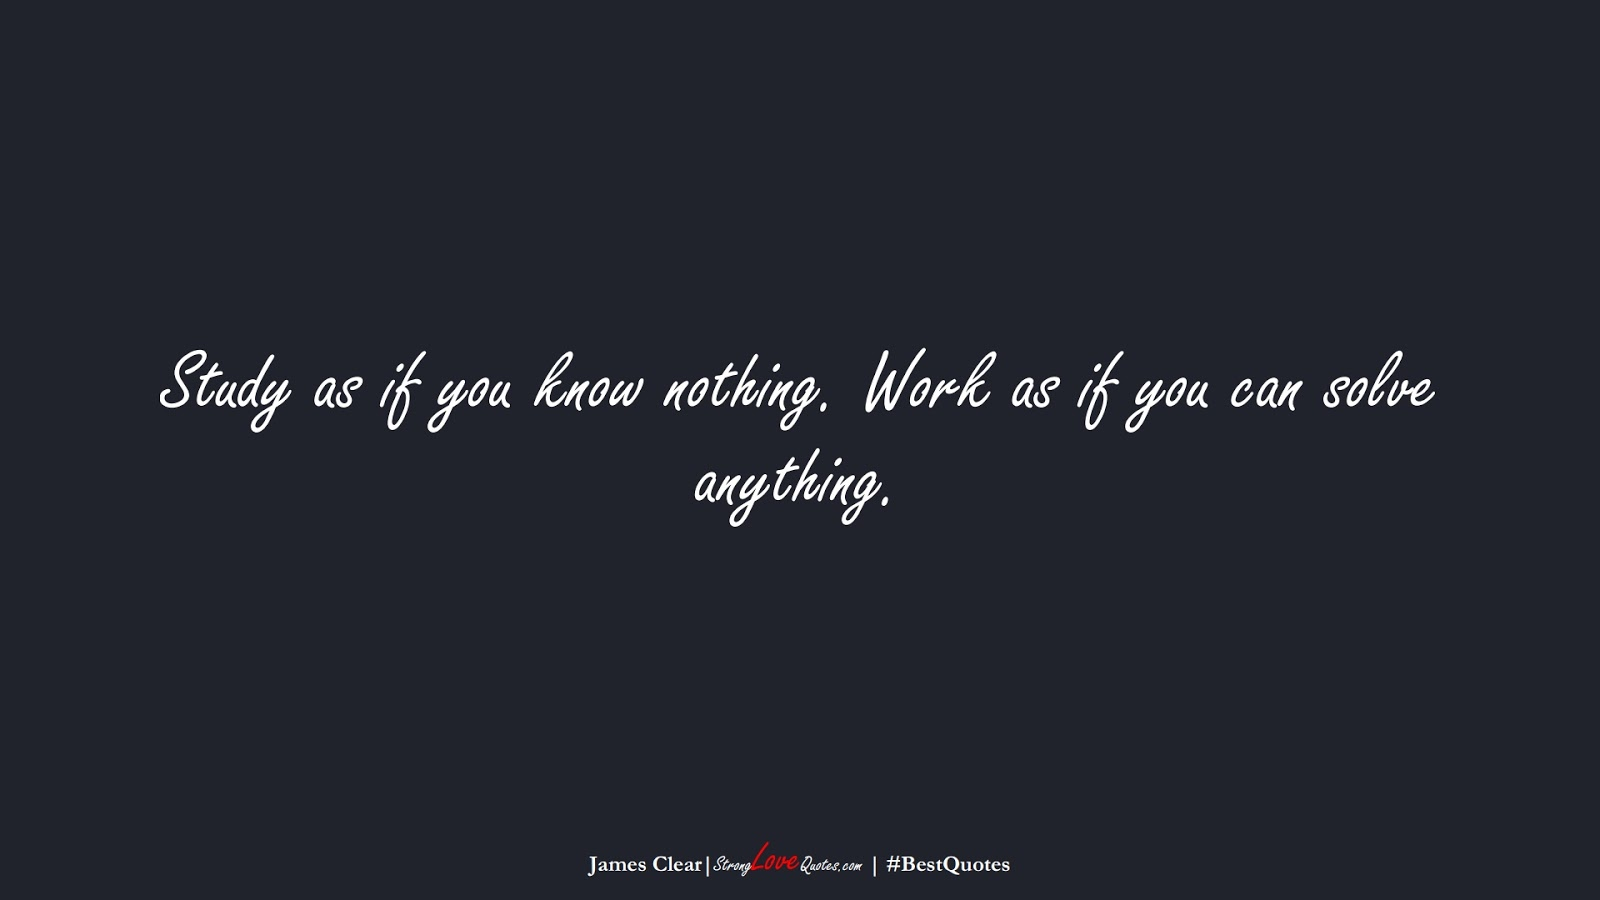 Study as if you know nothing. Work as if you can solve anything. (James Clear);  #BestQuotes